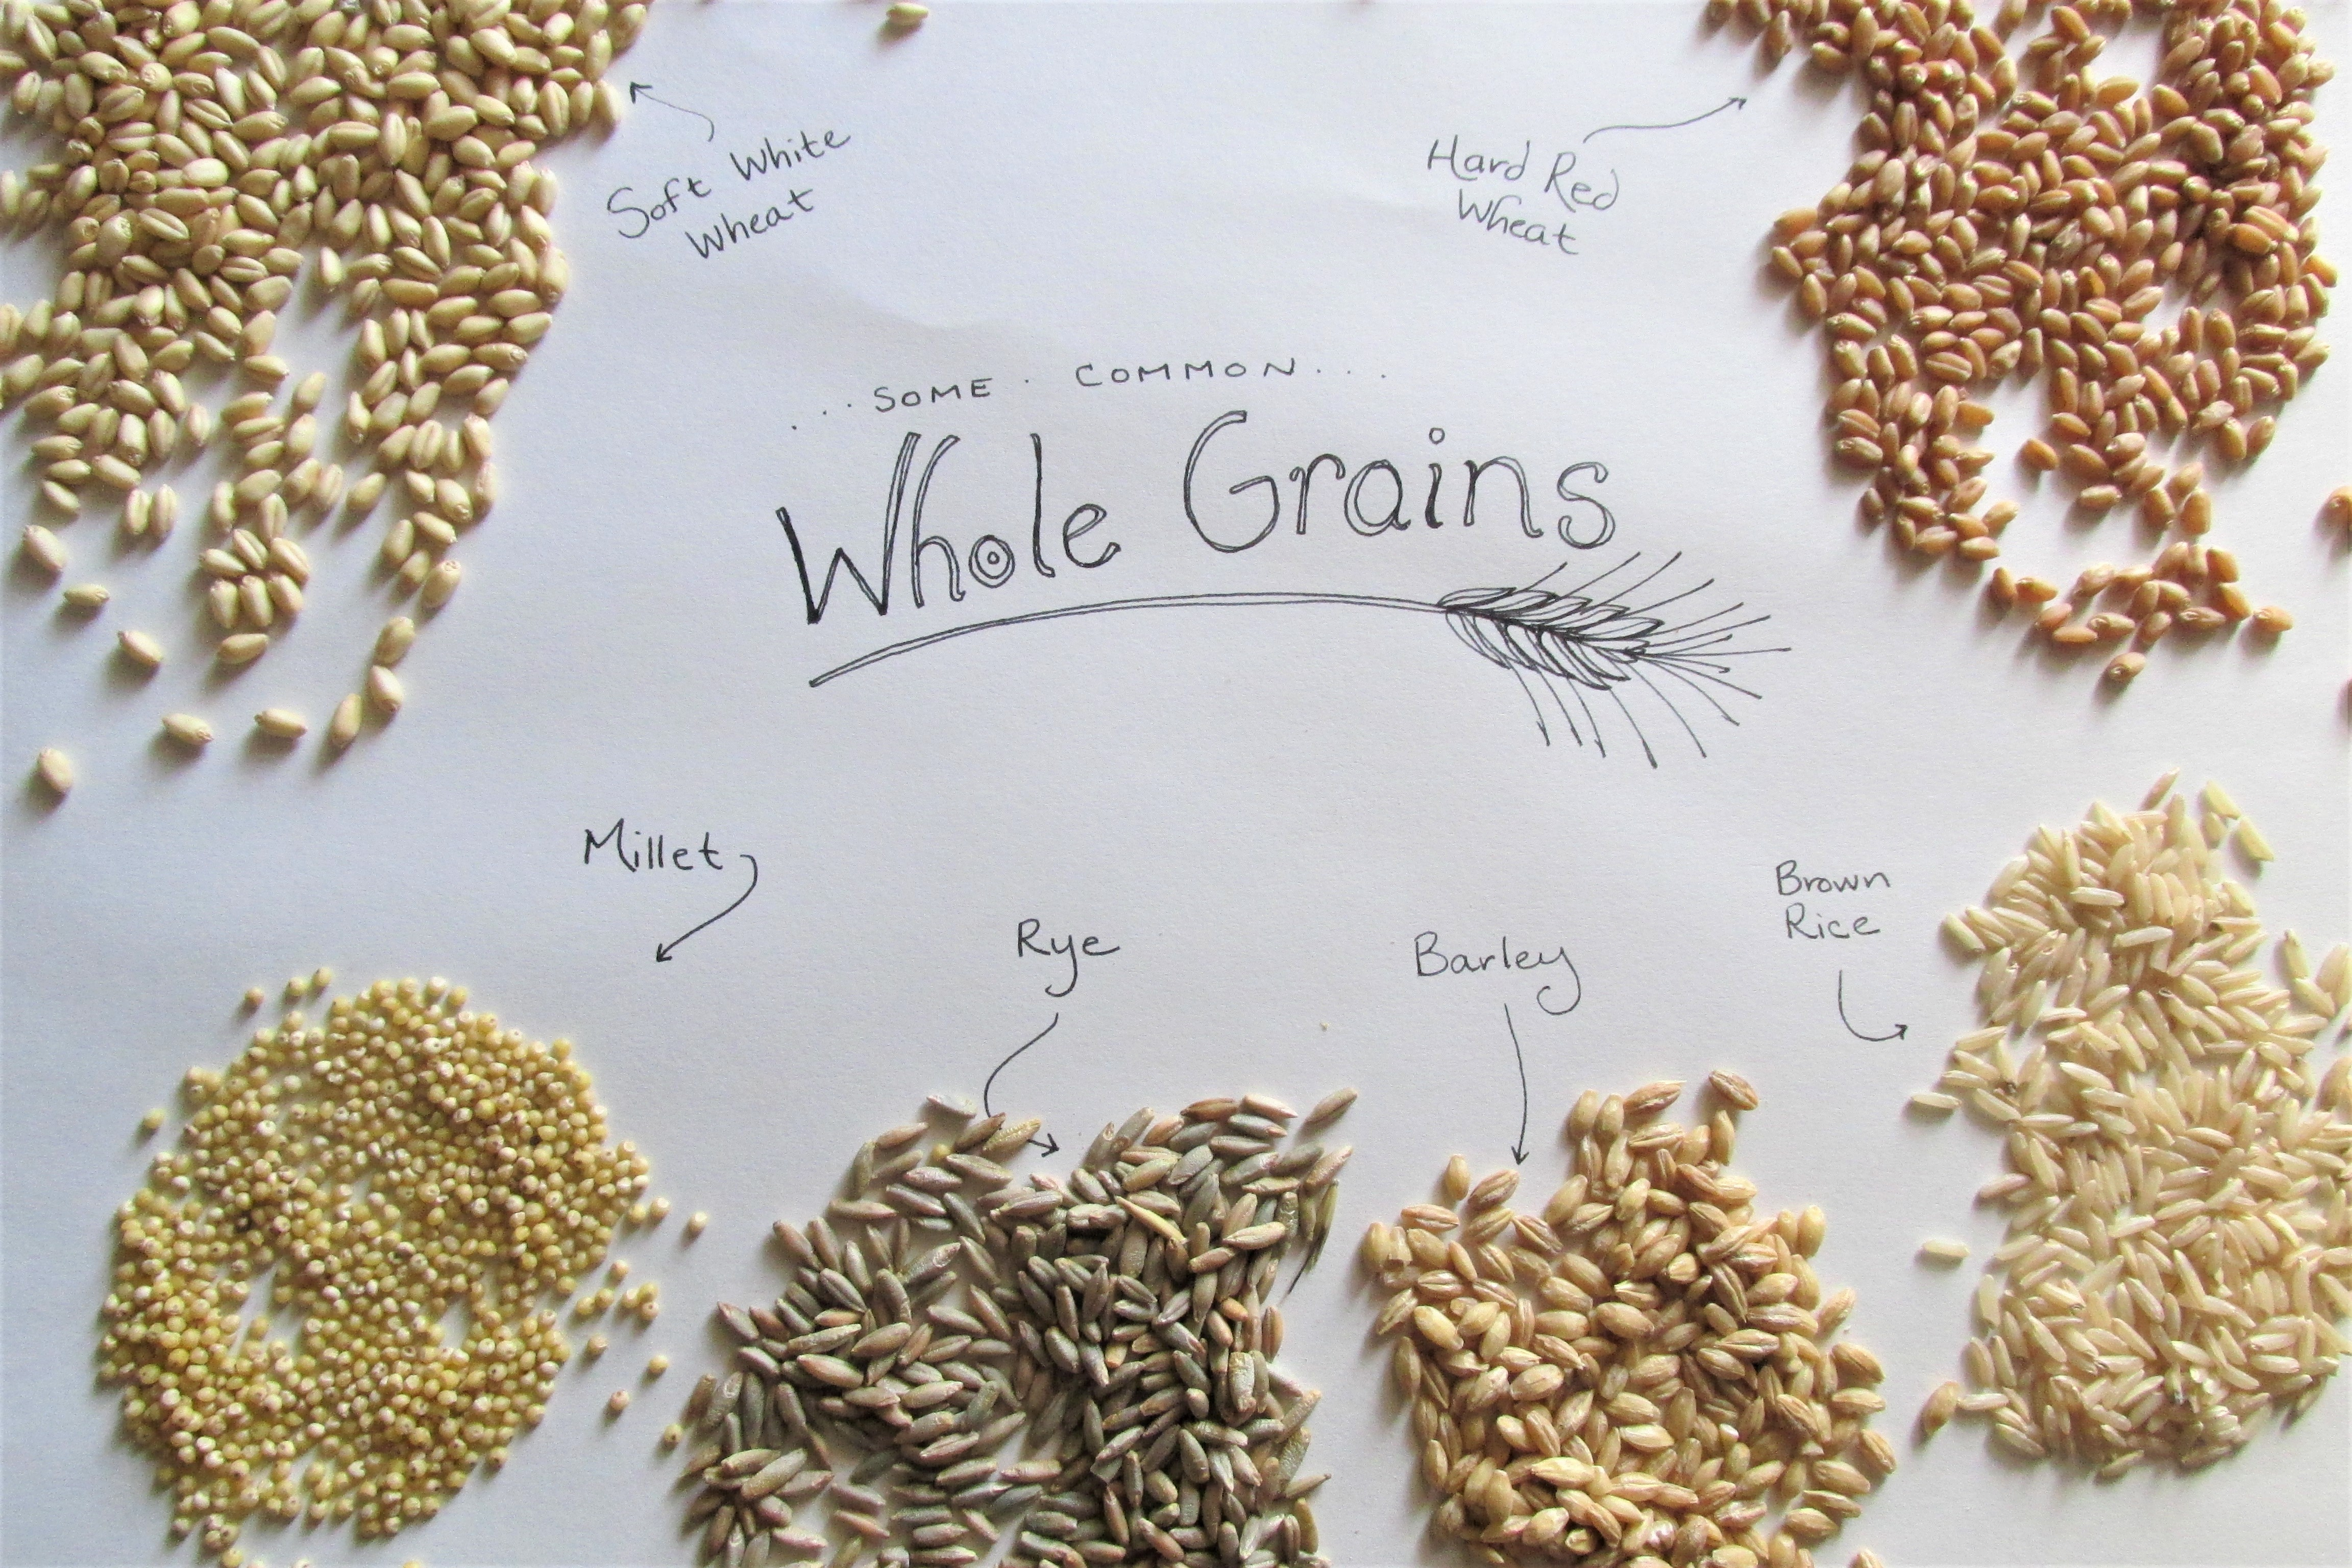 whole grains and names